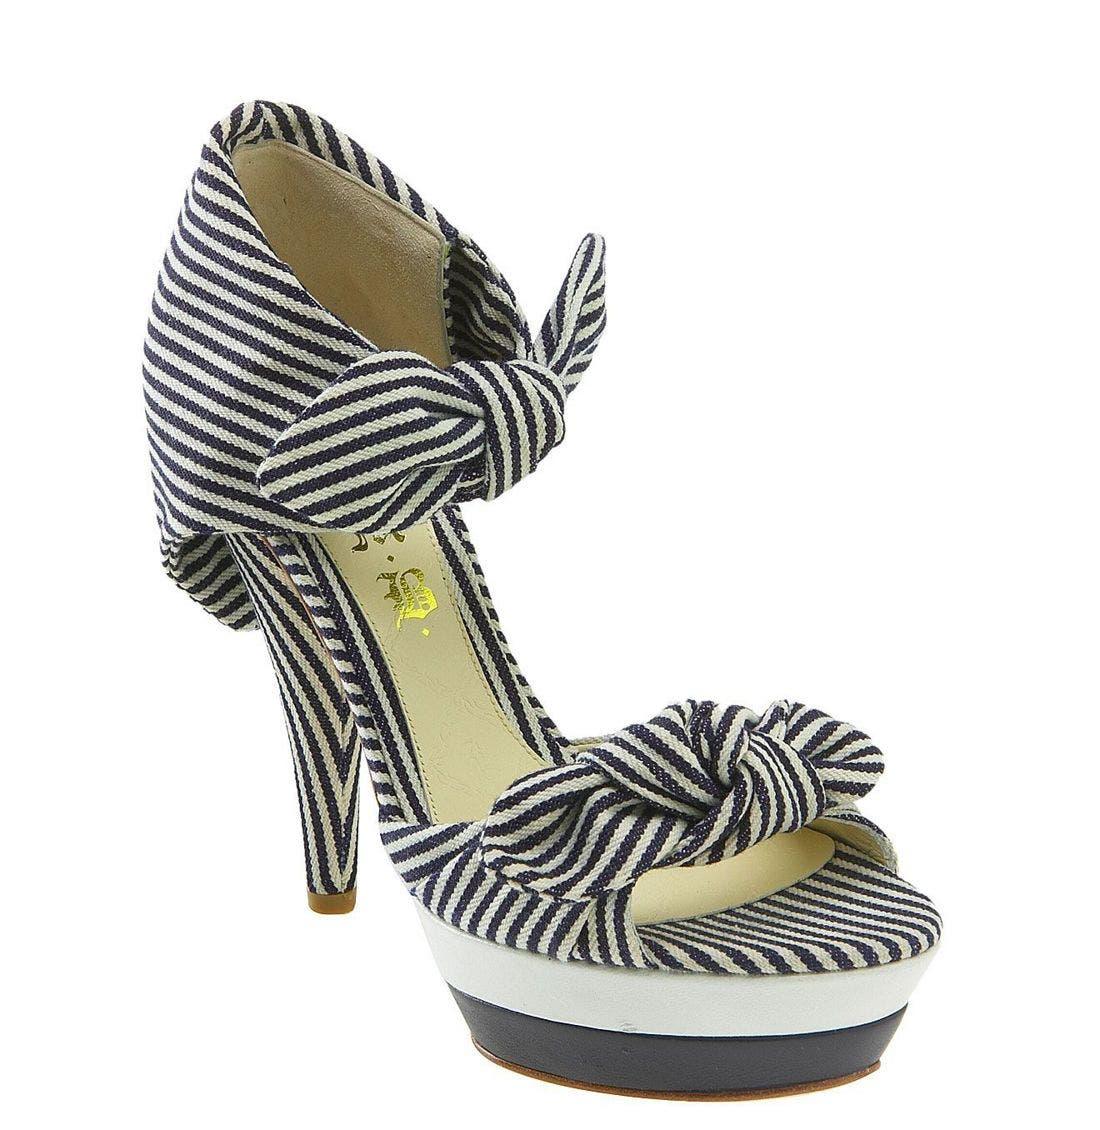 Alternate Image 1 Selected - L.A.M.B. 'Dominic' Striped Sandal